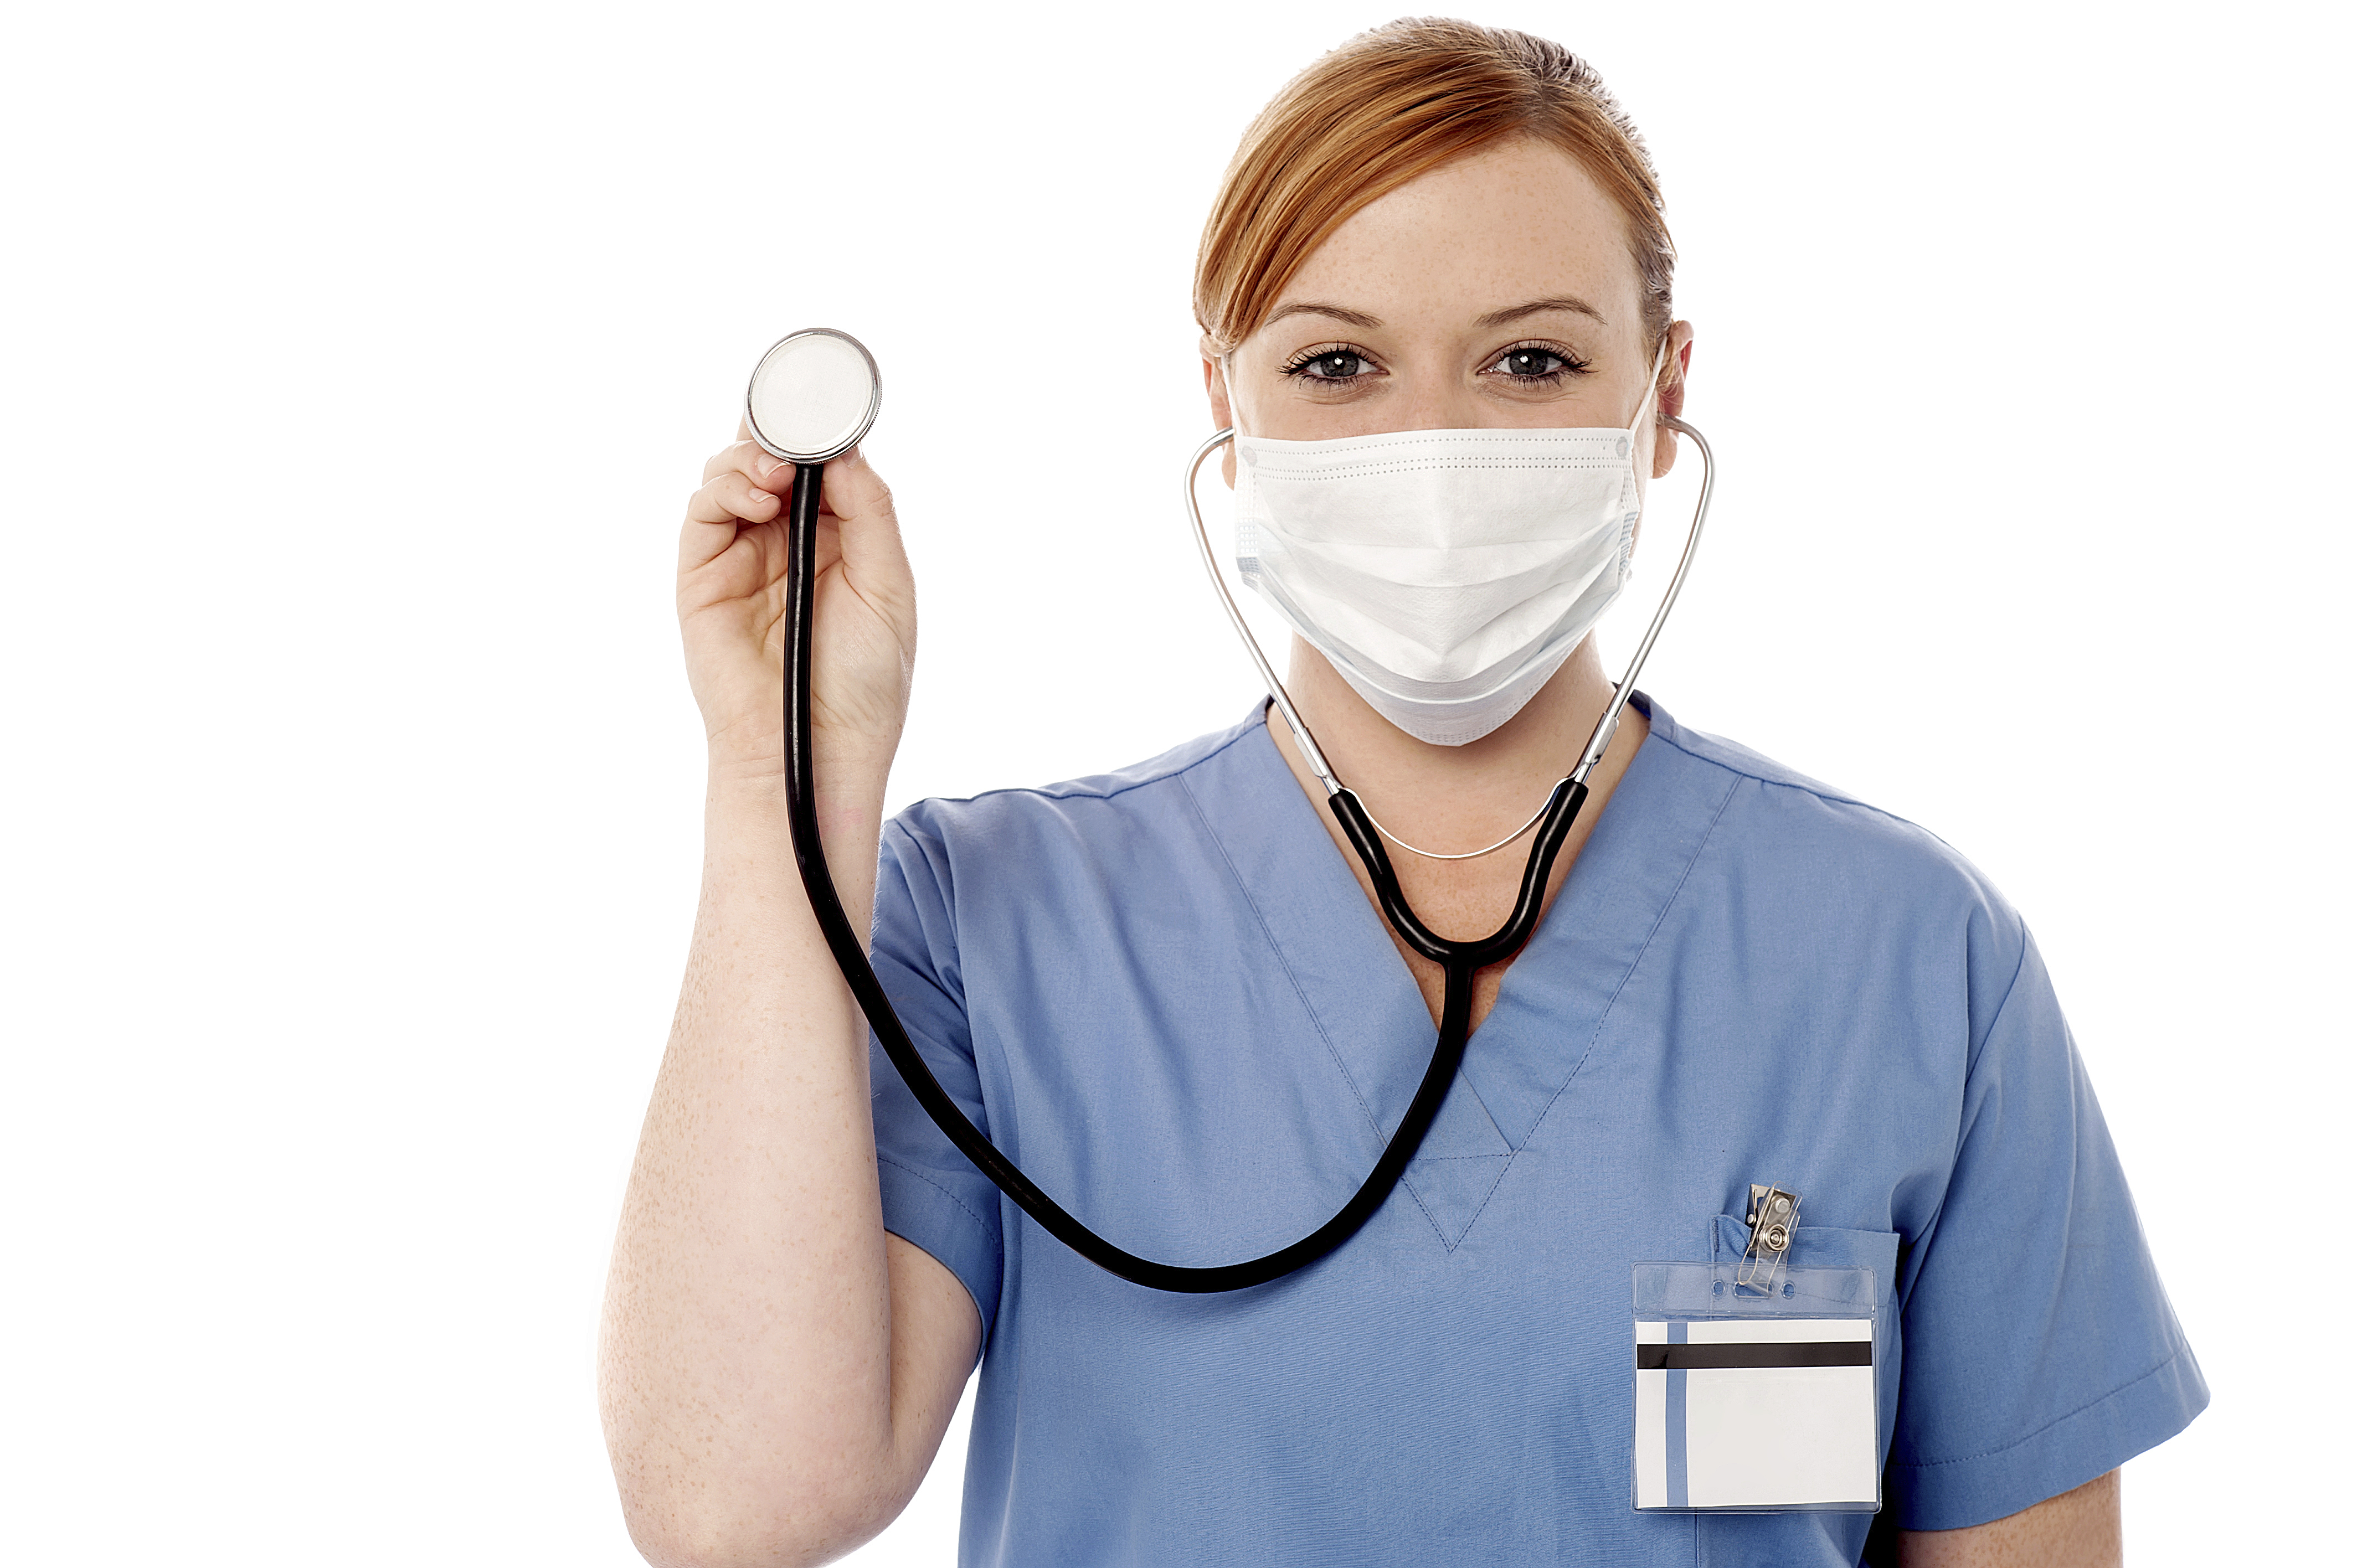 The highest paying travel nursing jobs in Idaho come from Millenia Medical Staffing. Our